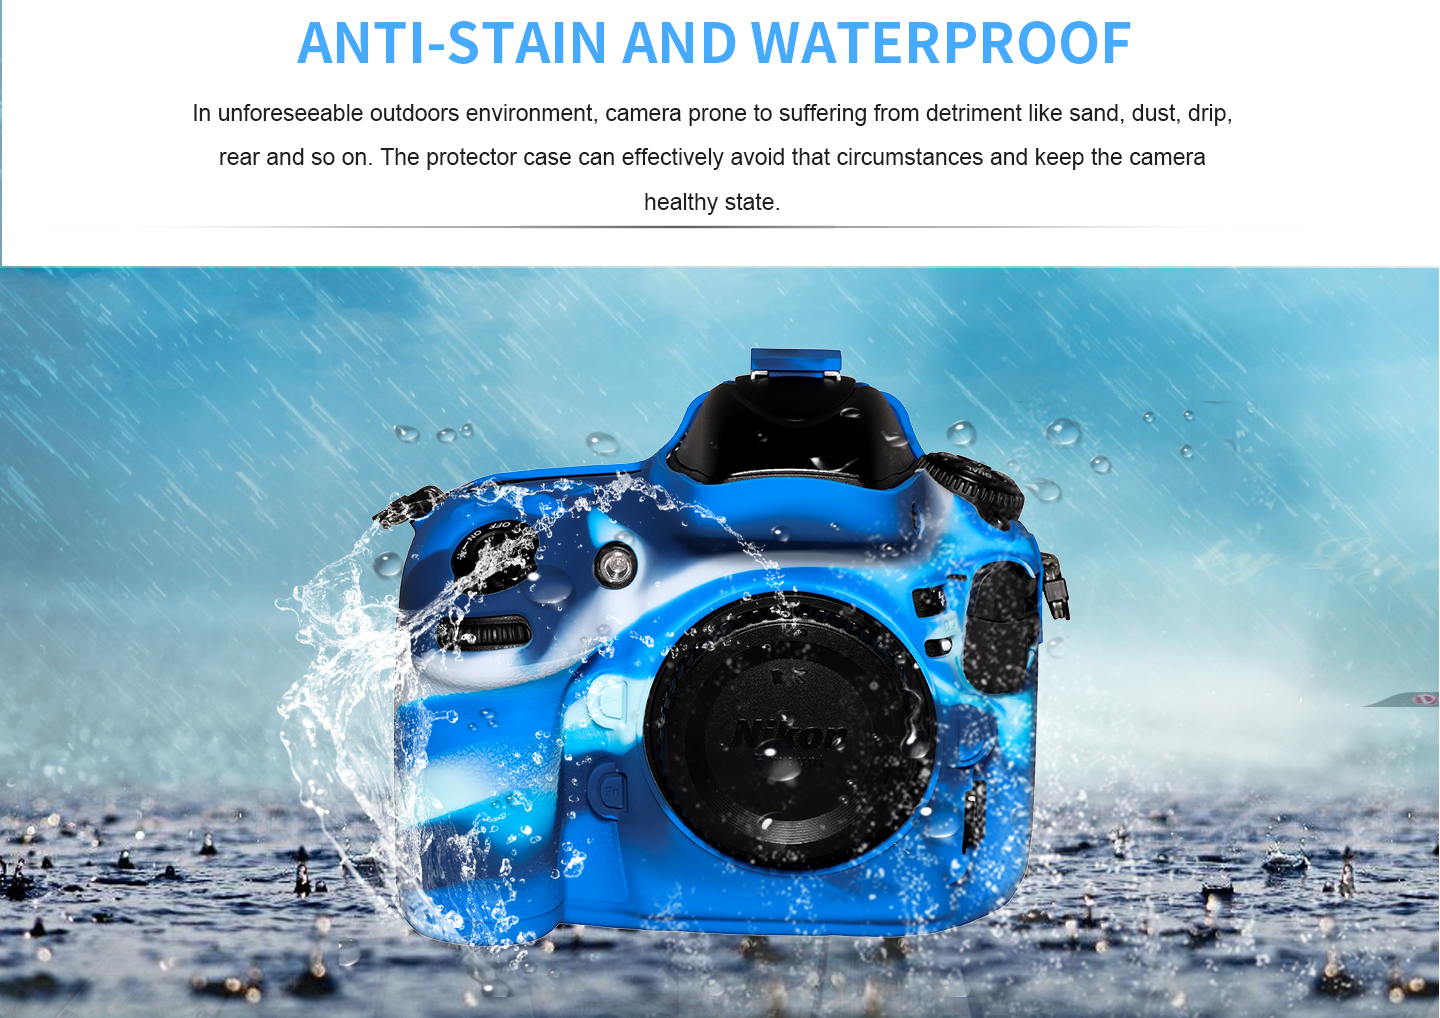 ANTI-STAIN AND WATERPROOF